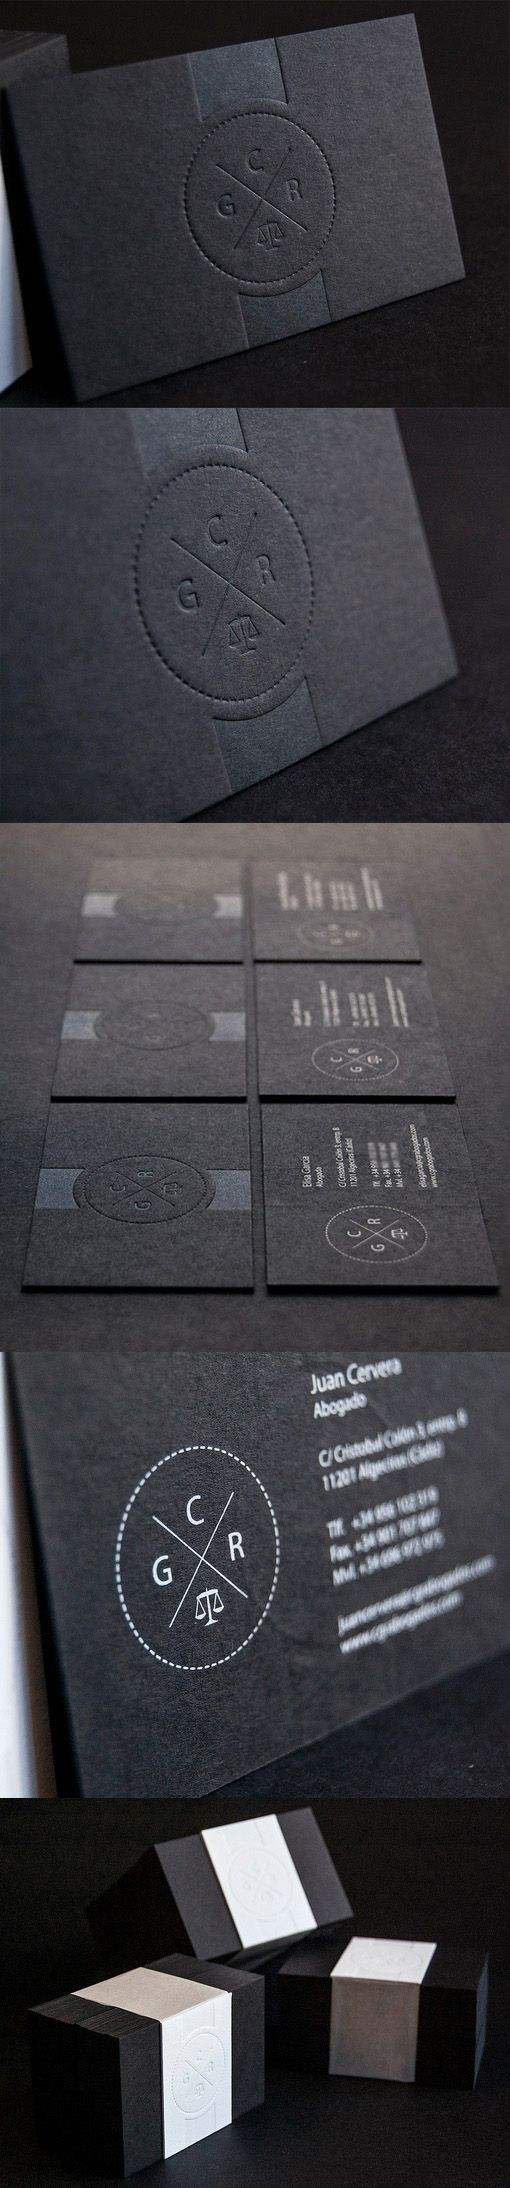 818 best business cards images on pinterest business cards carte black embossed business card design reheart Image collections